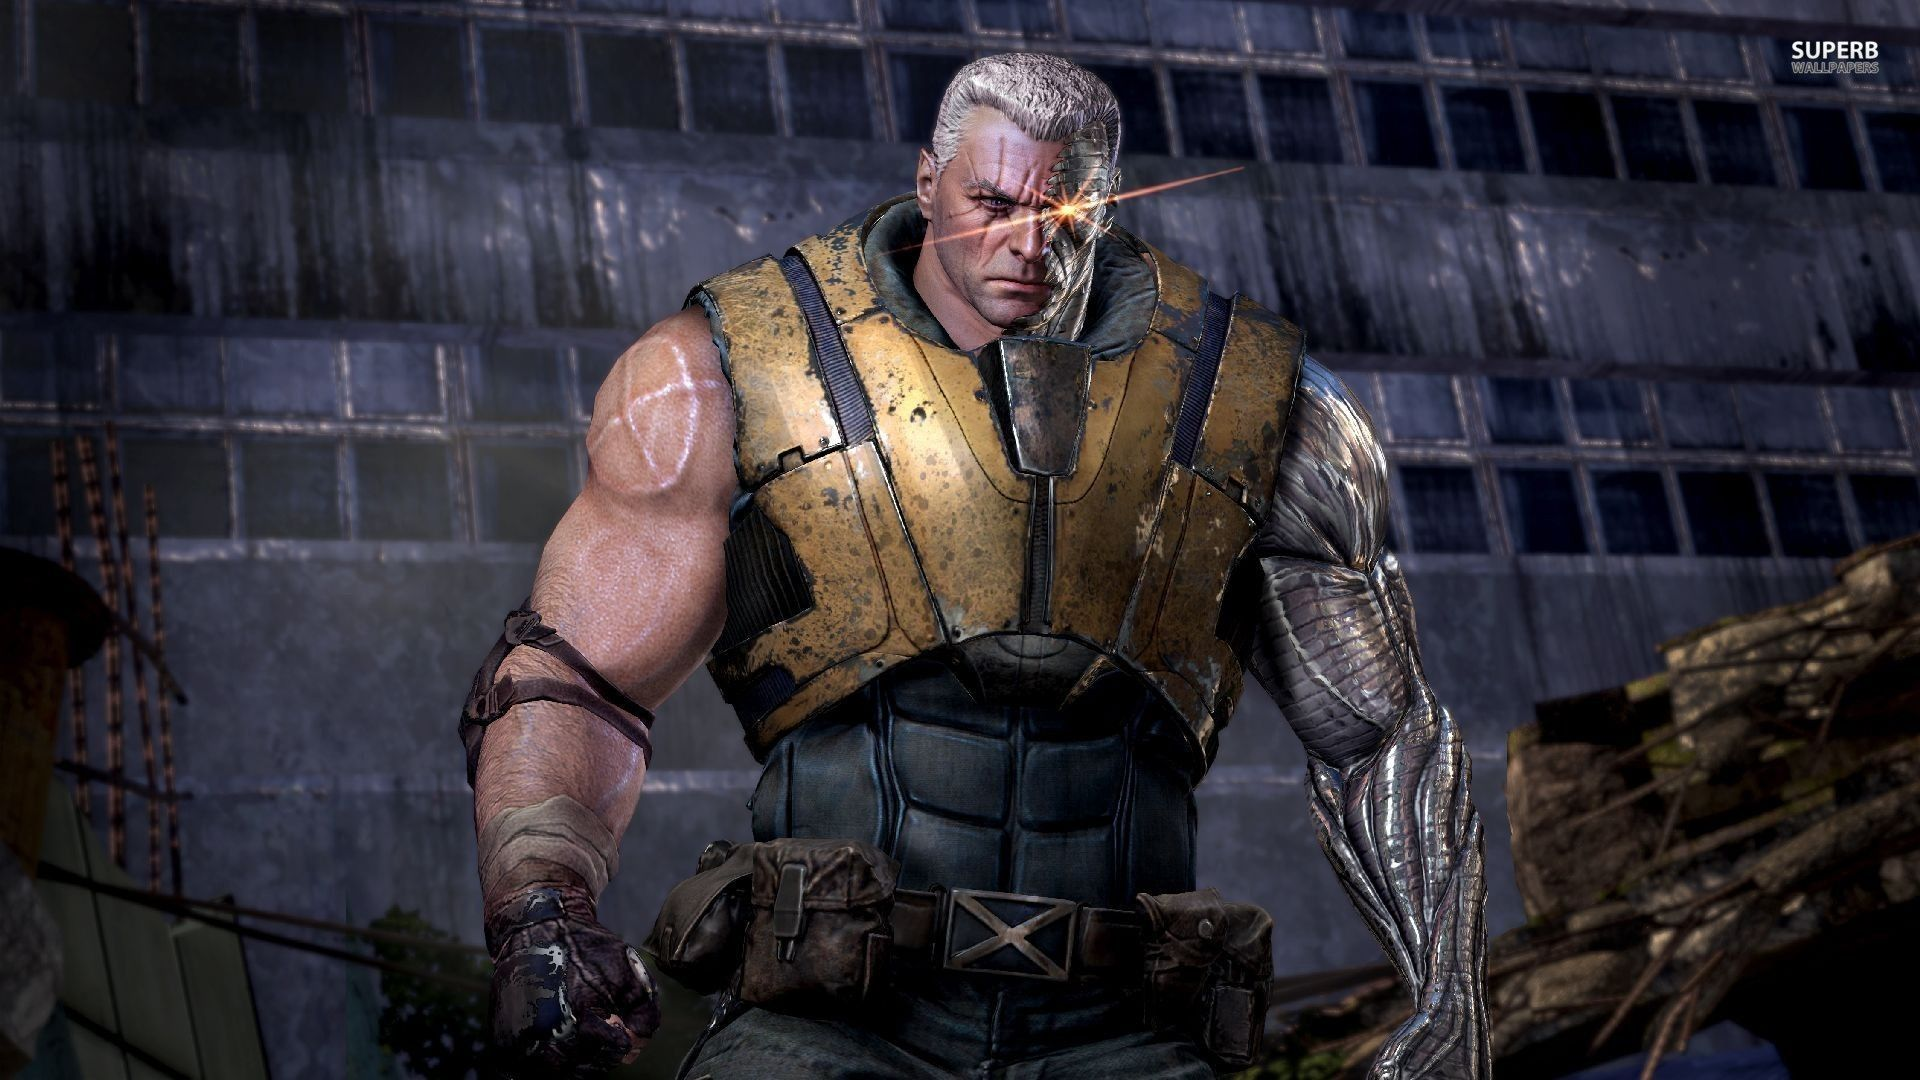 Cool Wallpaper Marvel Cable - 1a96aa3b4c83a092f2fedbf87947fa88  Perfect Image Reference_952957.jpg